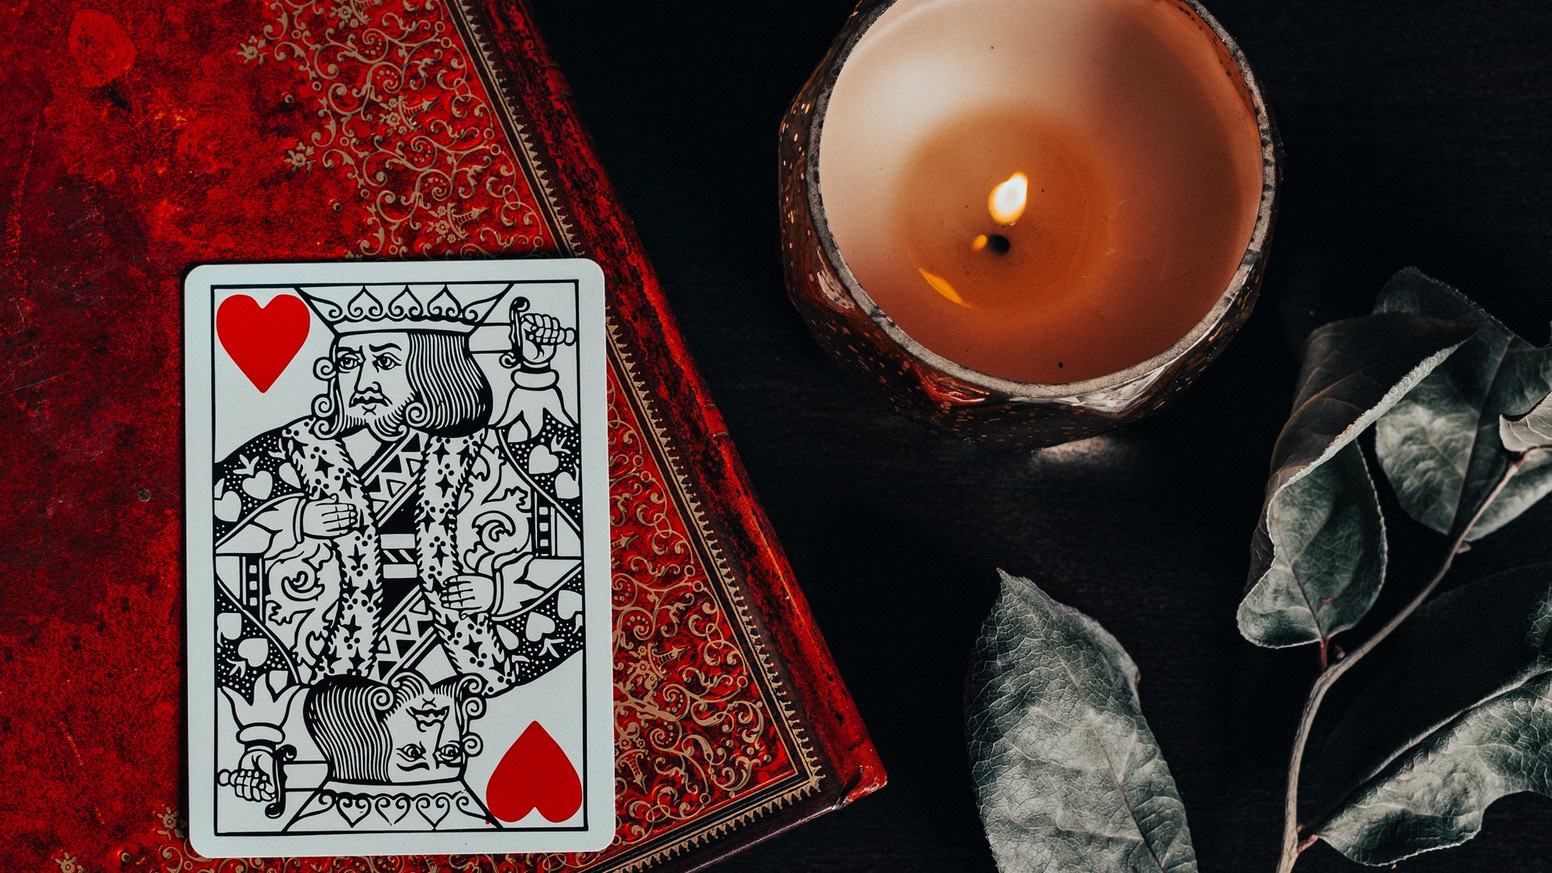 An artistic professional pack of playing cards designed and hand illustrated for games, magic and cardistry.